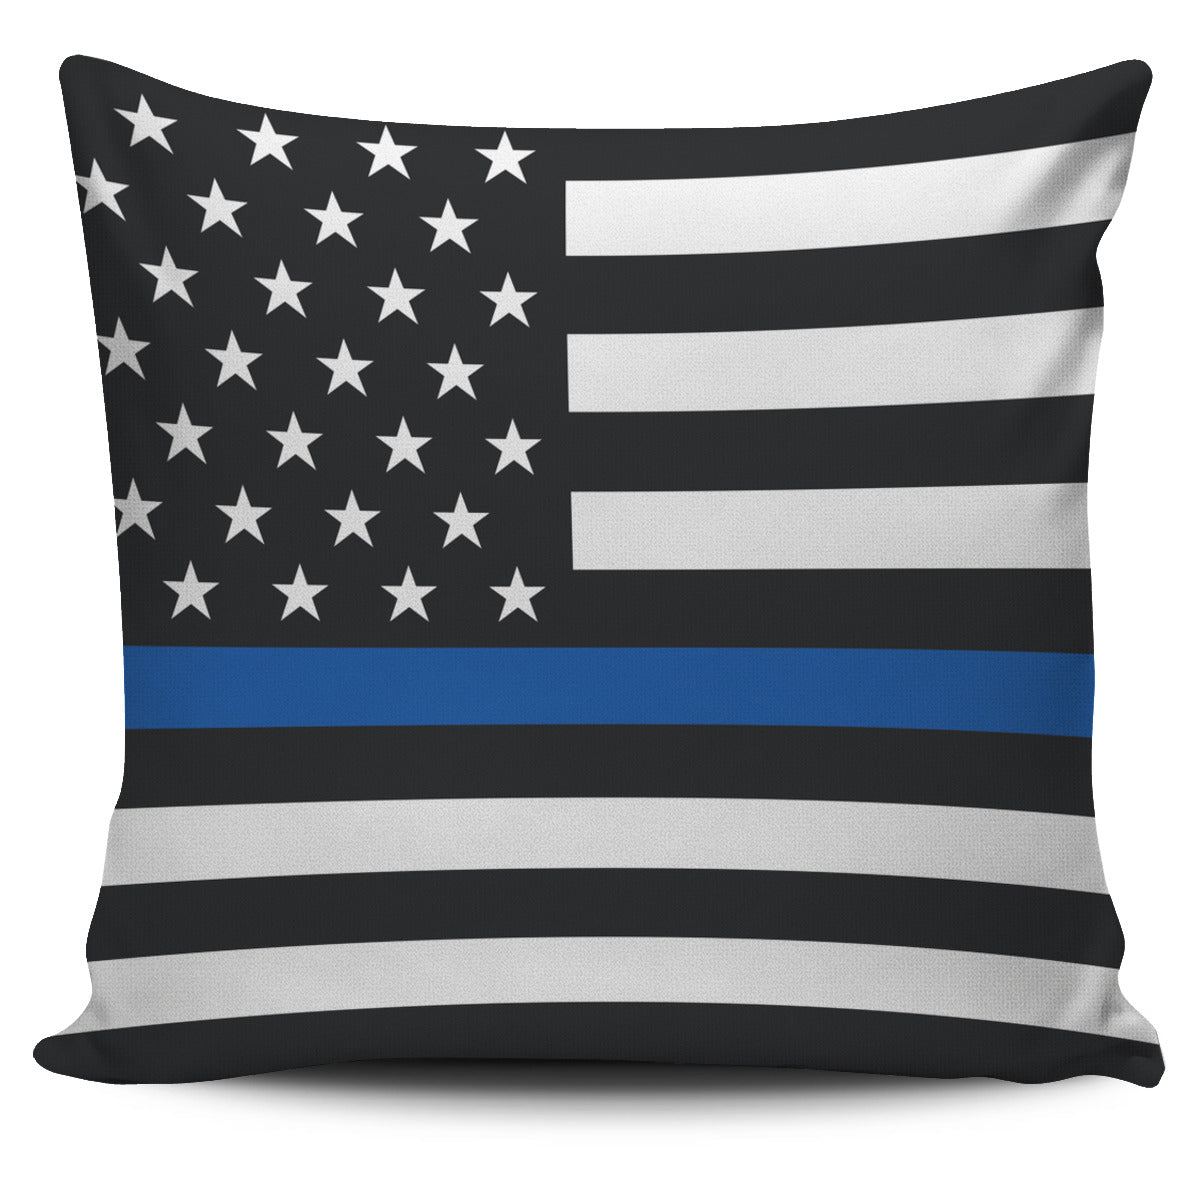 Police Pillow Cover